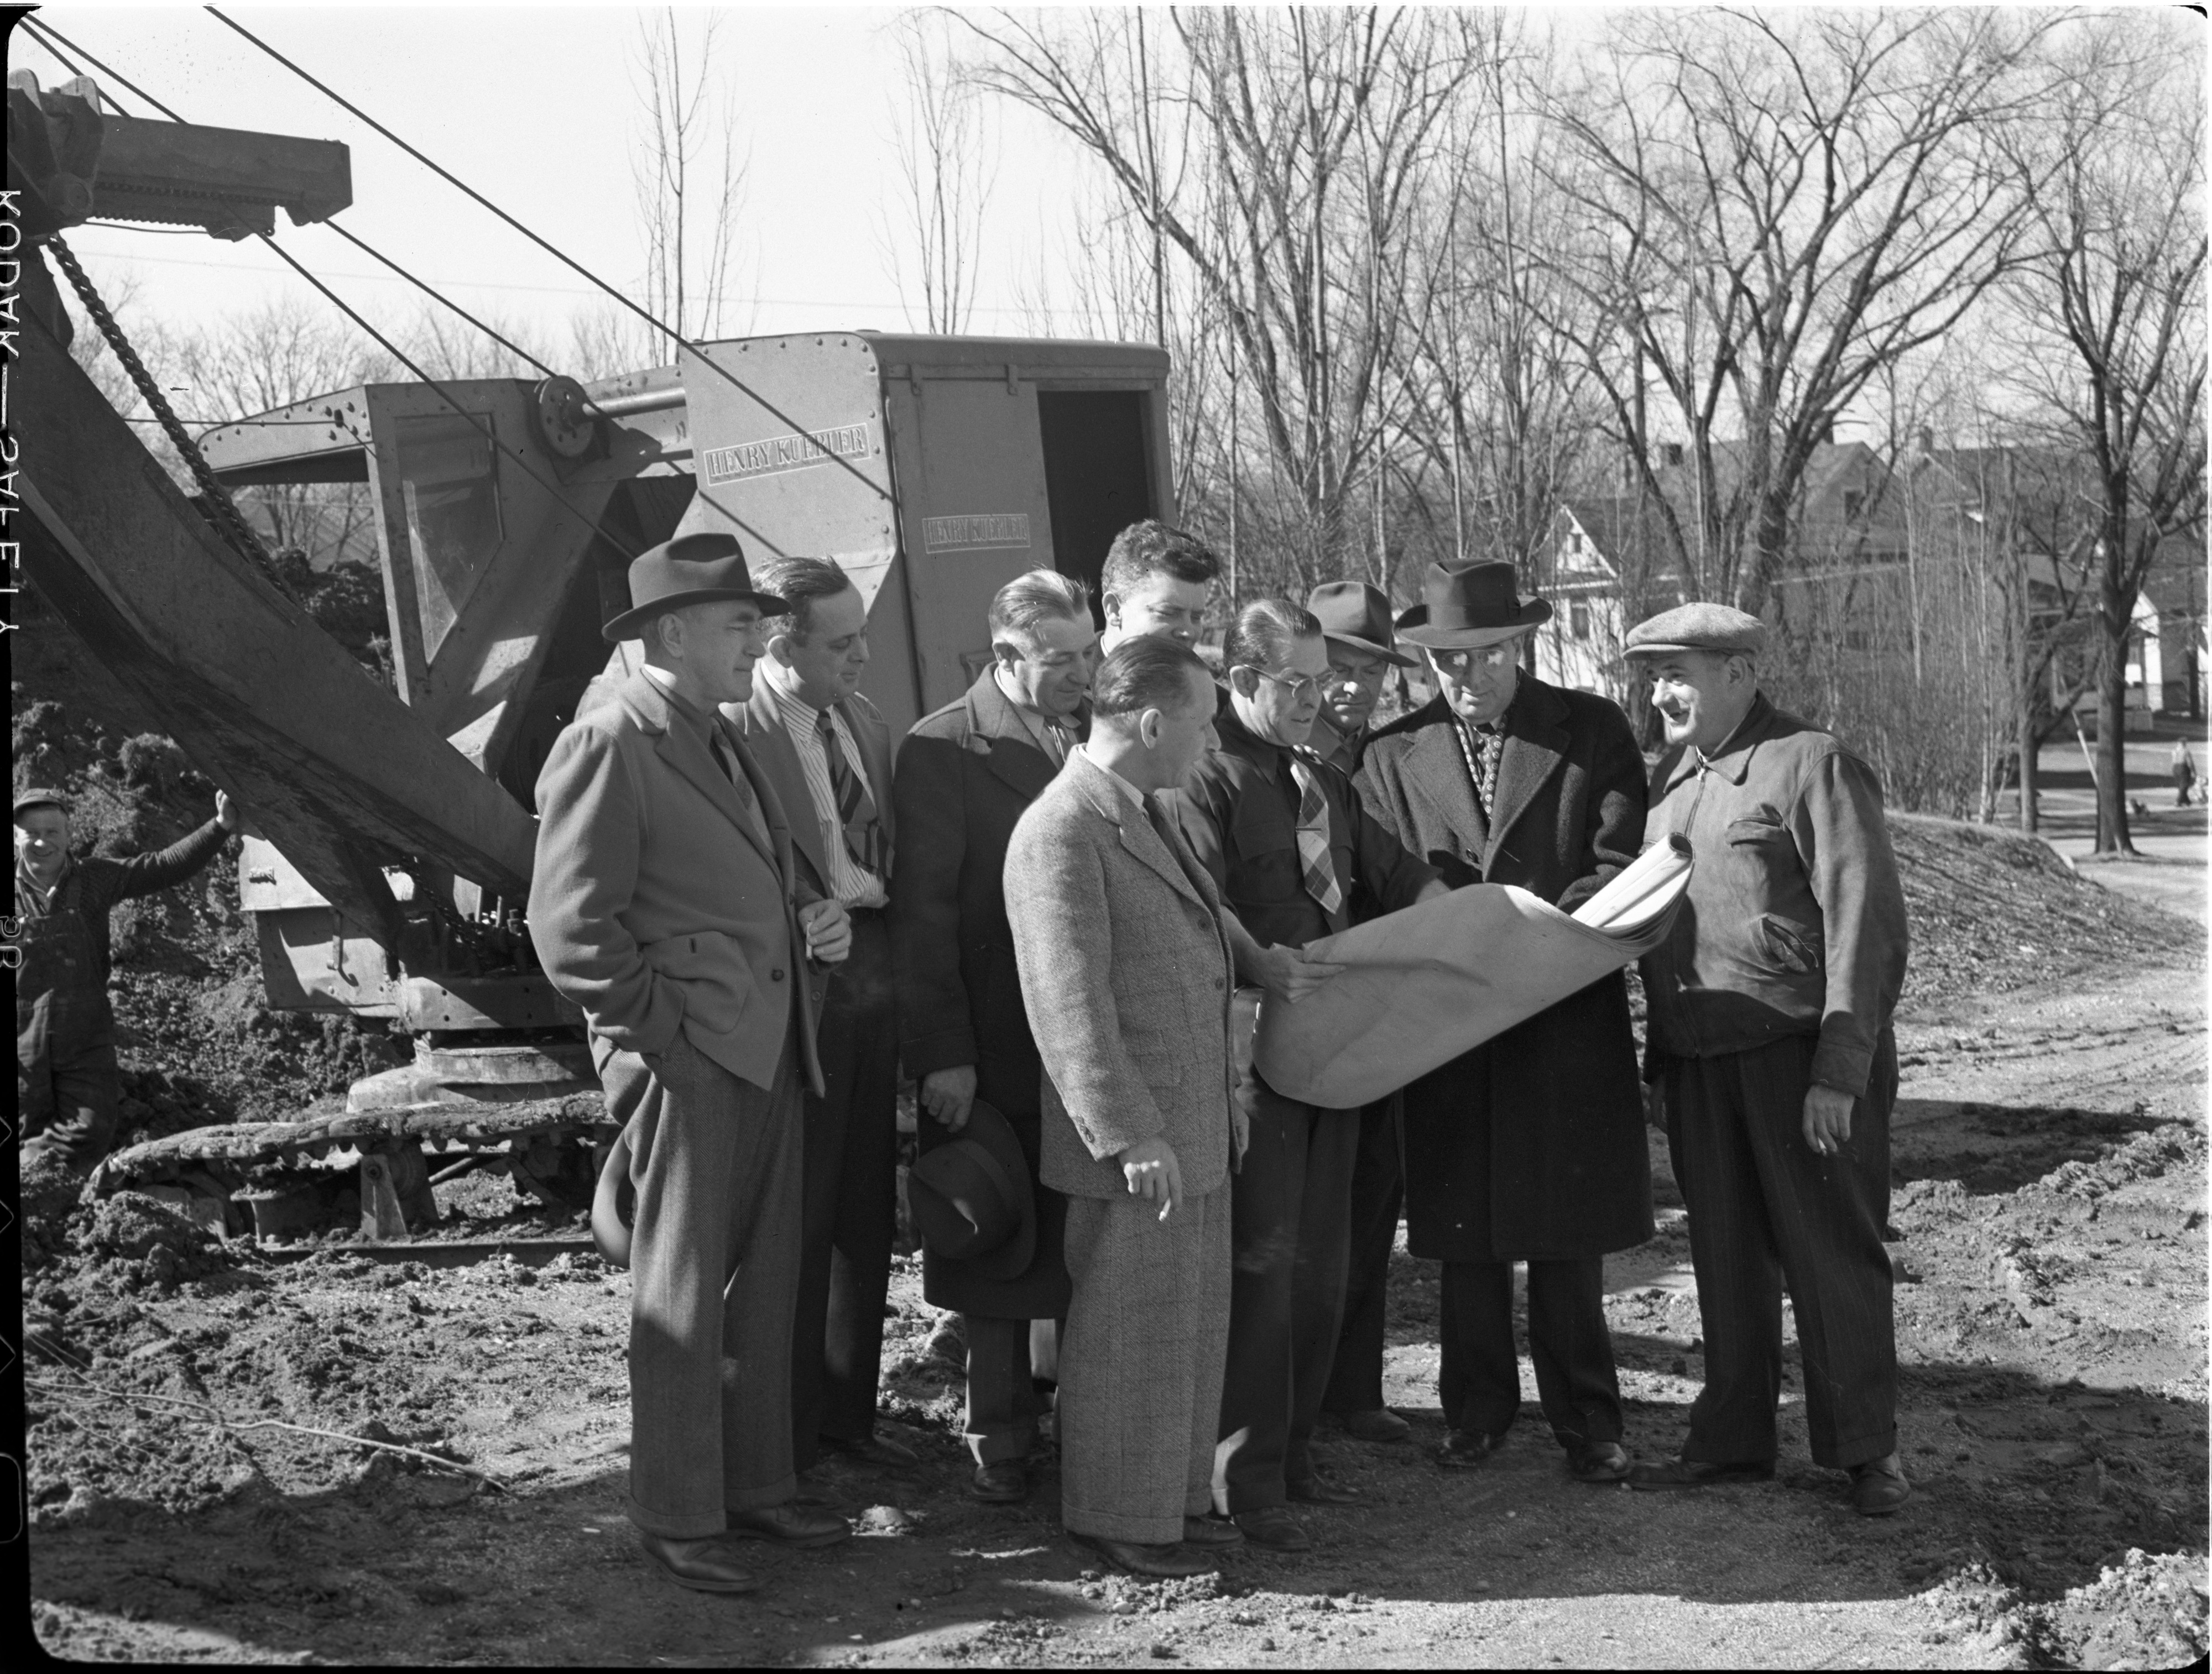 Ground Is Broken For An Addition To Erwin Prieskorn American Legion Post, March 1946 image